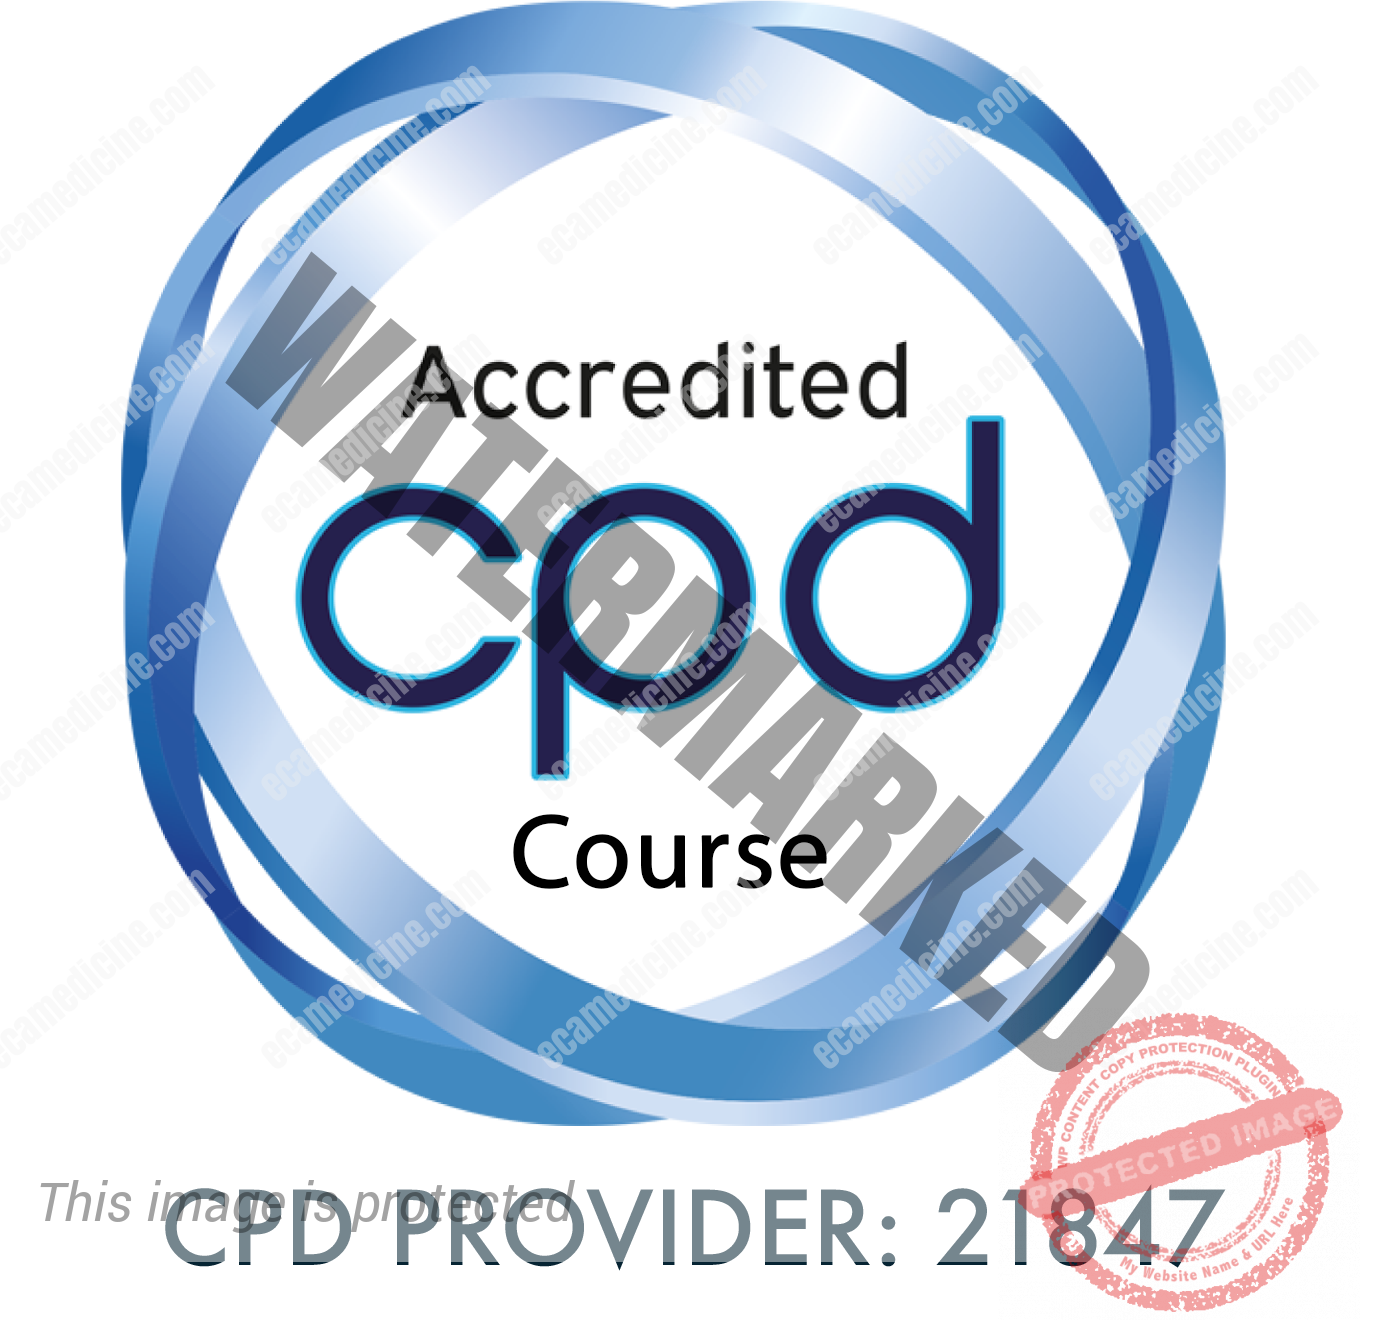 CPD Course Provider 21847-badge